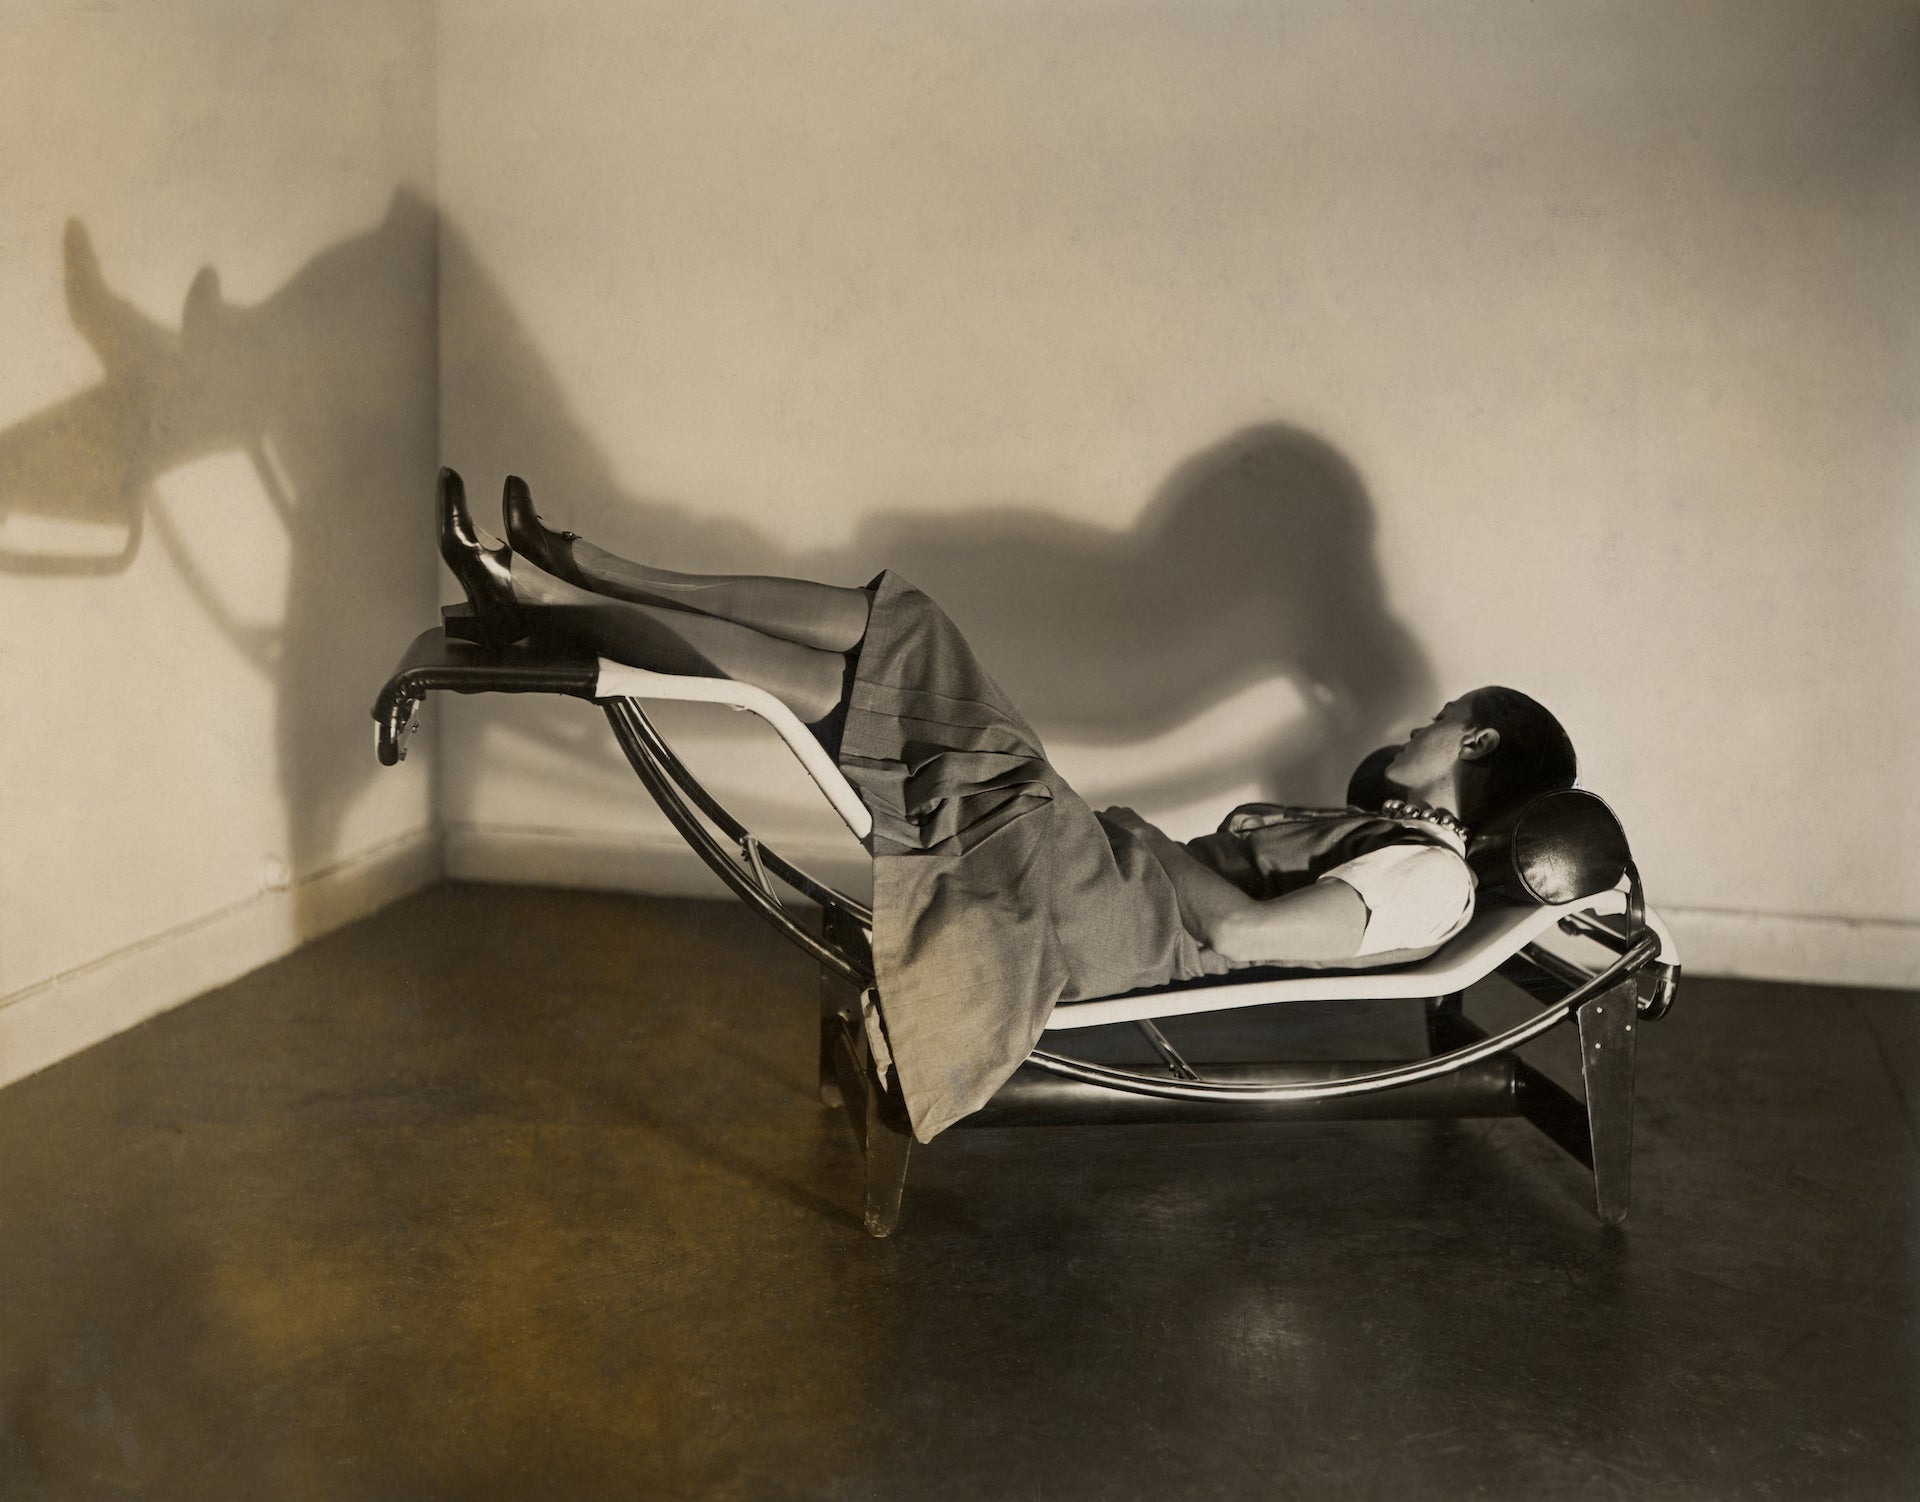 Charlotte Perriand on the B306 Chaise Longue Basculante, designed by Le Corbusier, Charlotte Perriand, and Pierre Jeanneret in 1929. Photo © AChP/ © ADAGP, Paris and DACS, London 2021